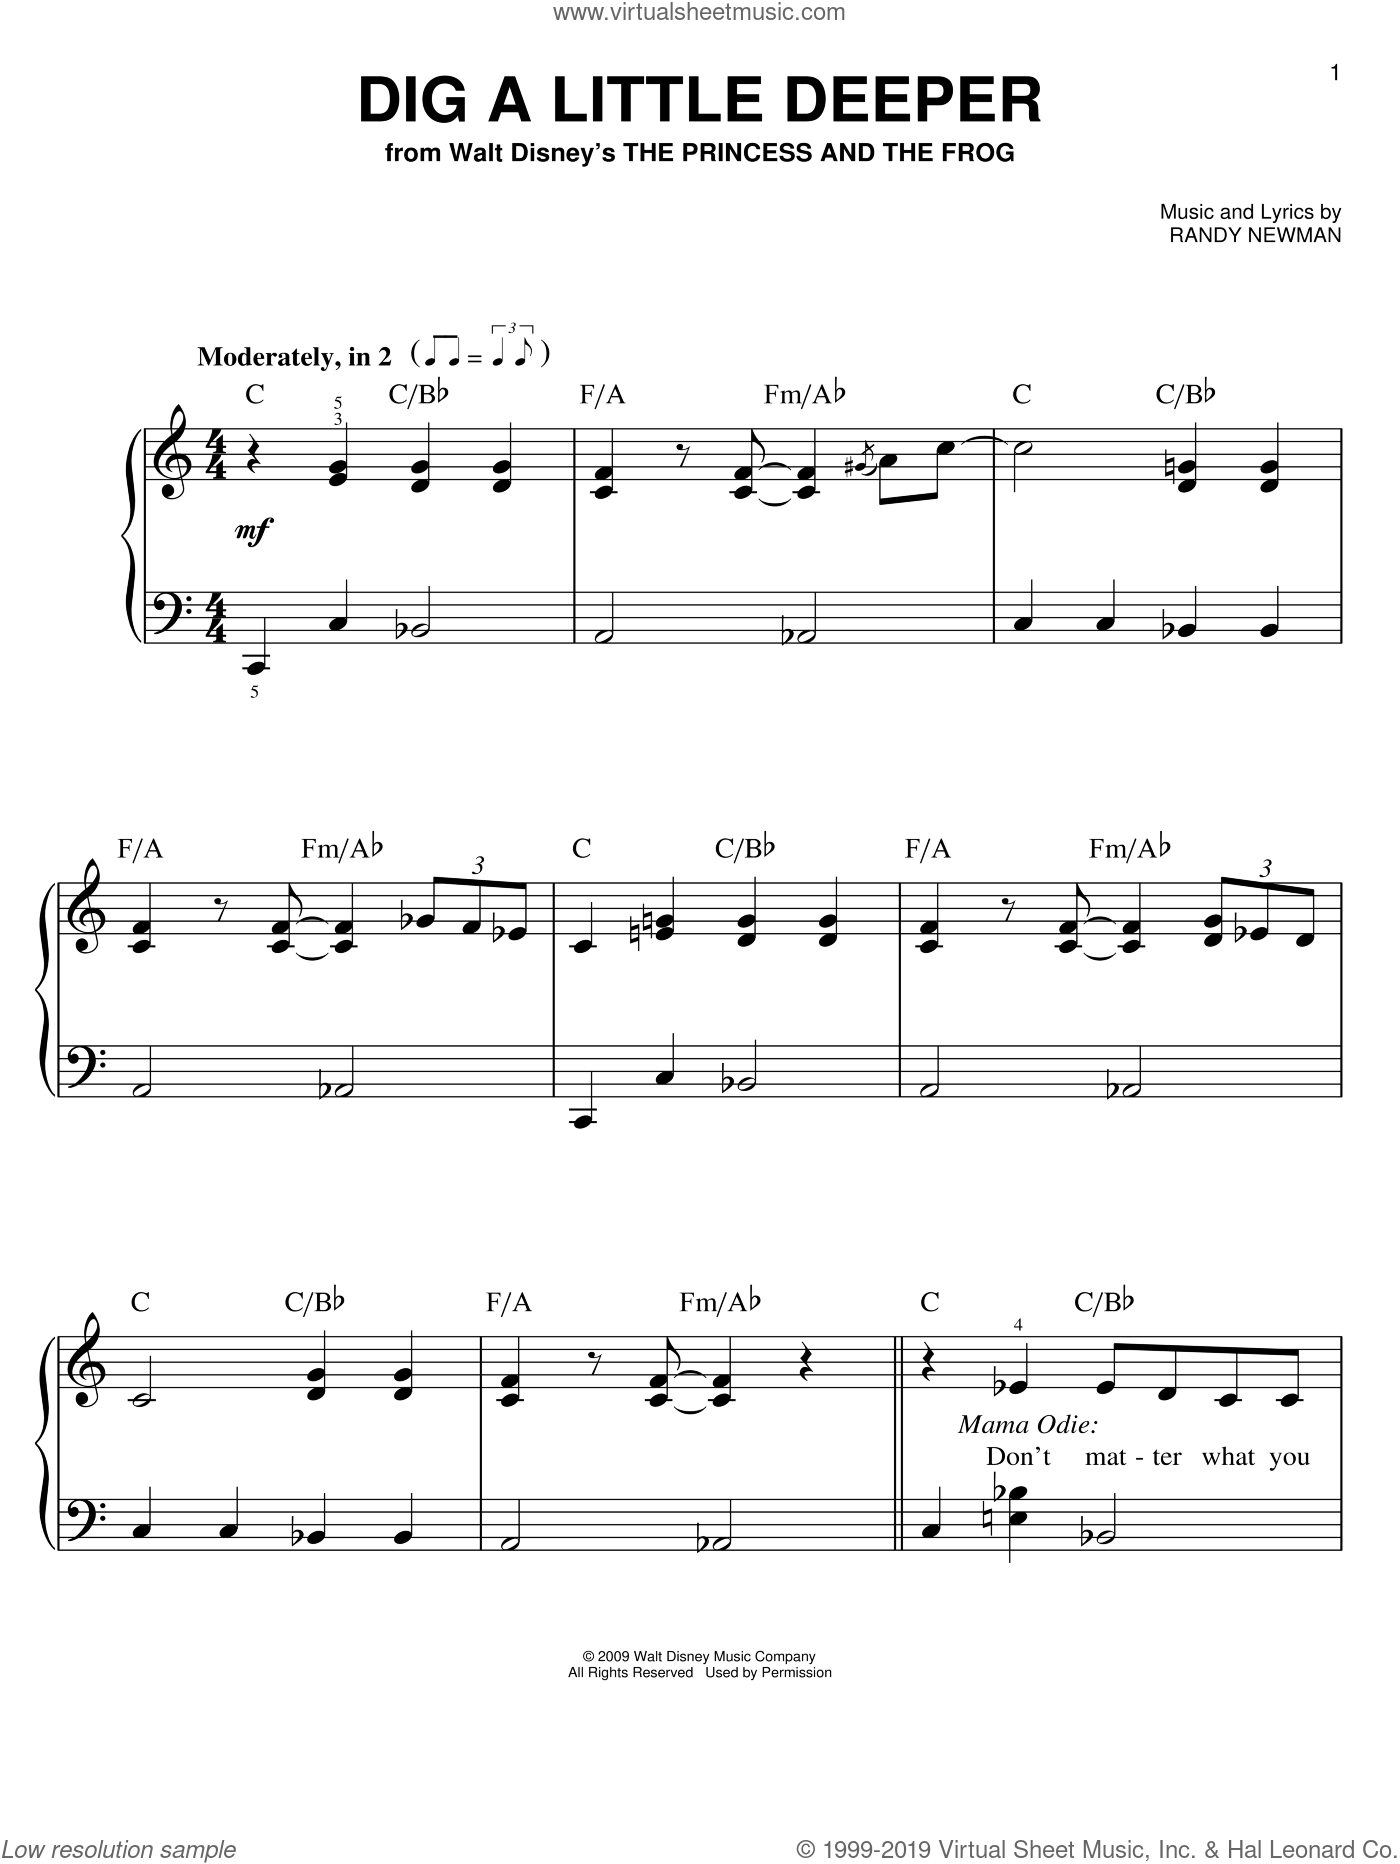 Dig A Little Deeper sheet music for piano solo by Randy Newman, Jennifer Lewis and The Princess And The Frog (Movie), easy skill level